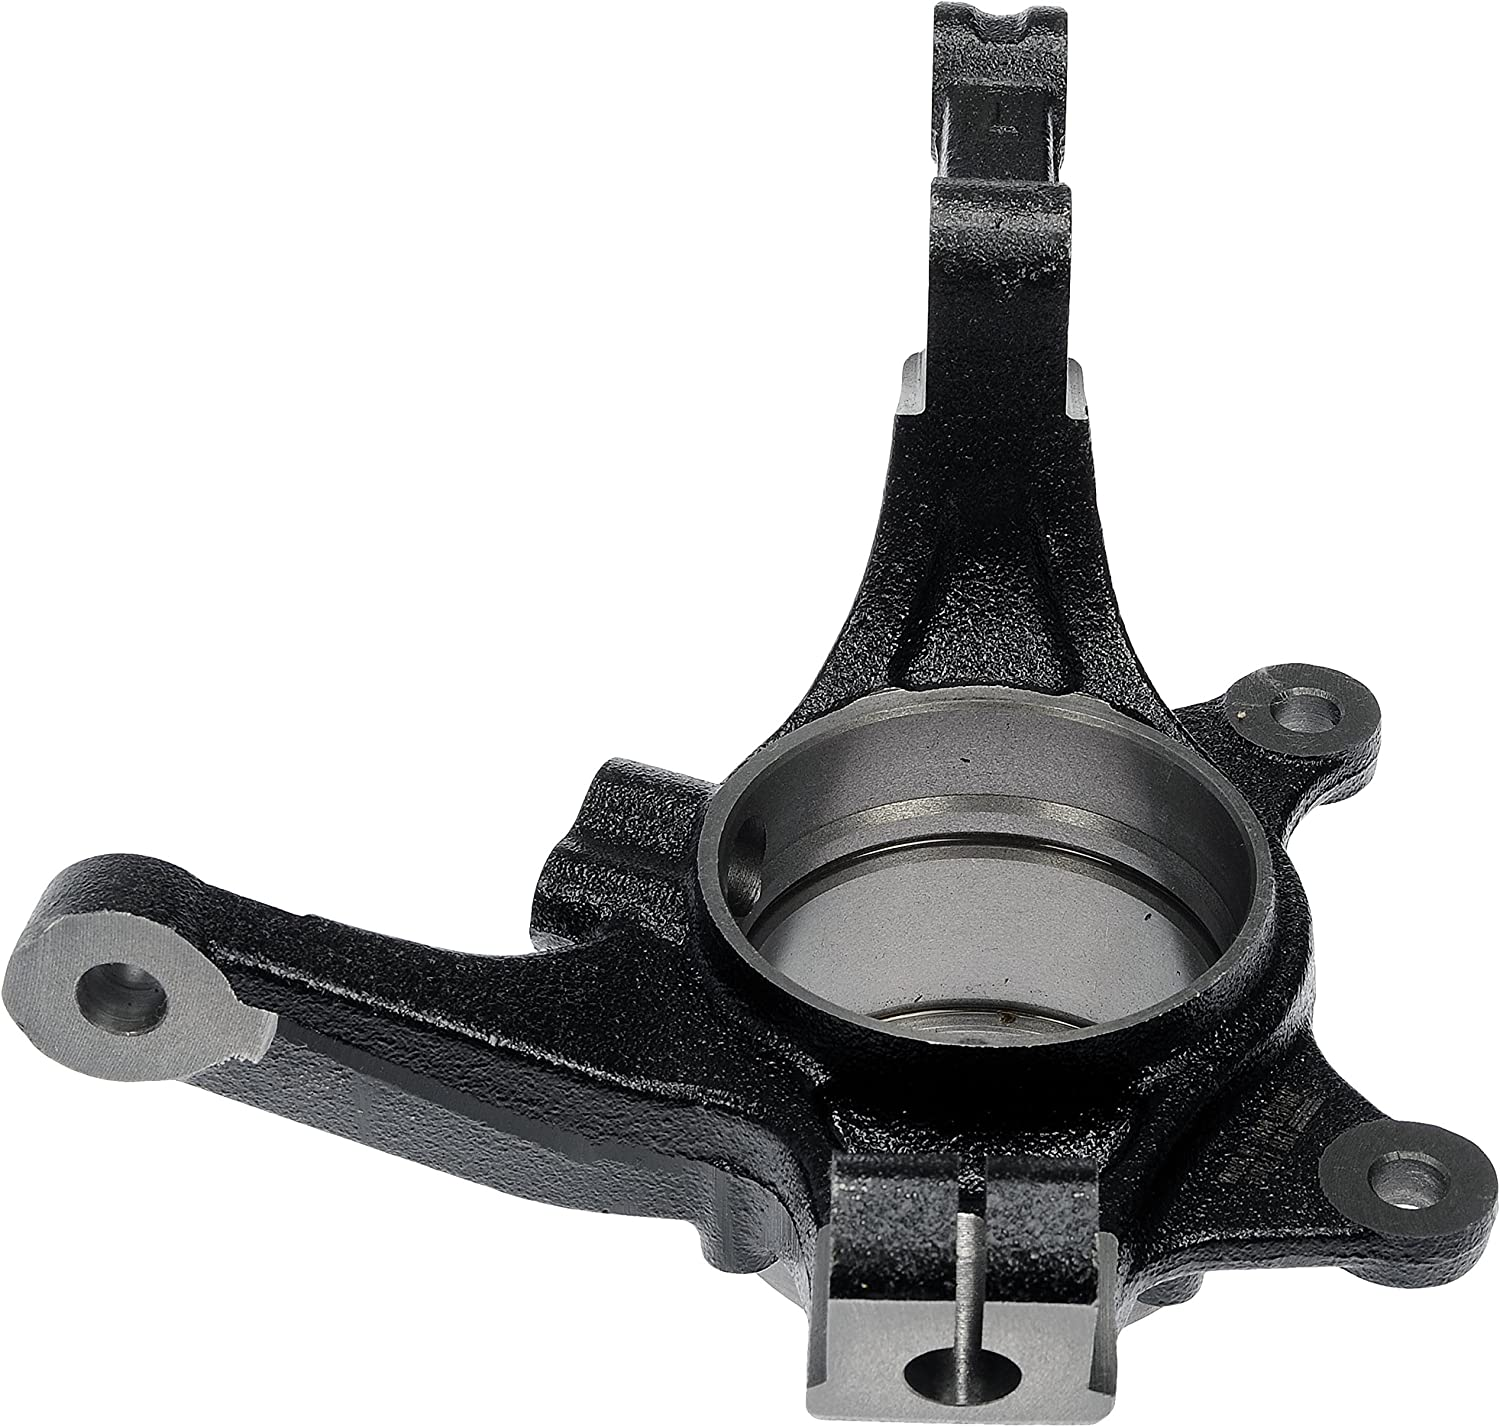 Kia Models Dorman 698-055 Front Driver Side Steering Knuckle for Select Hyundai